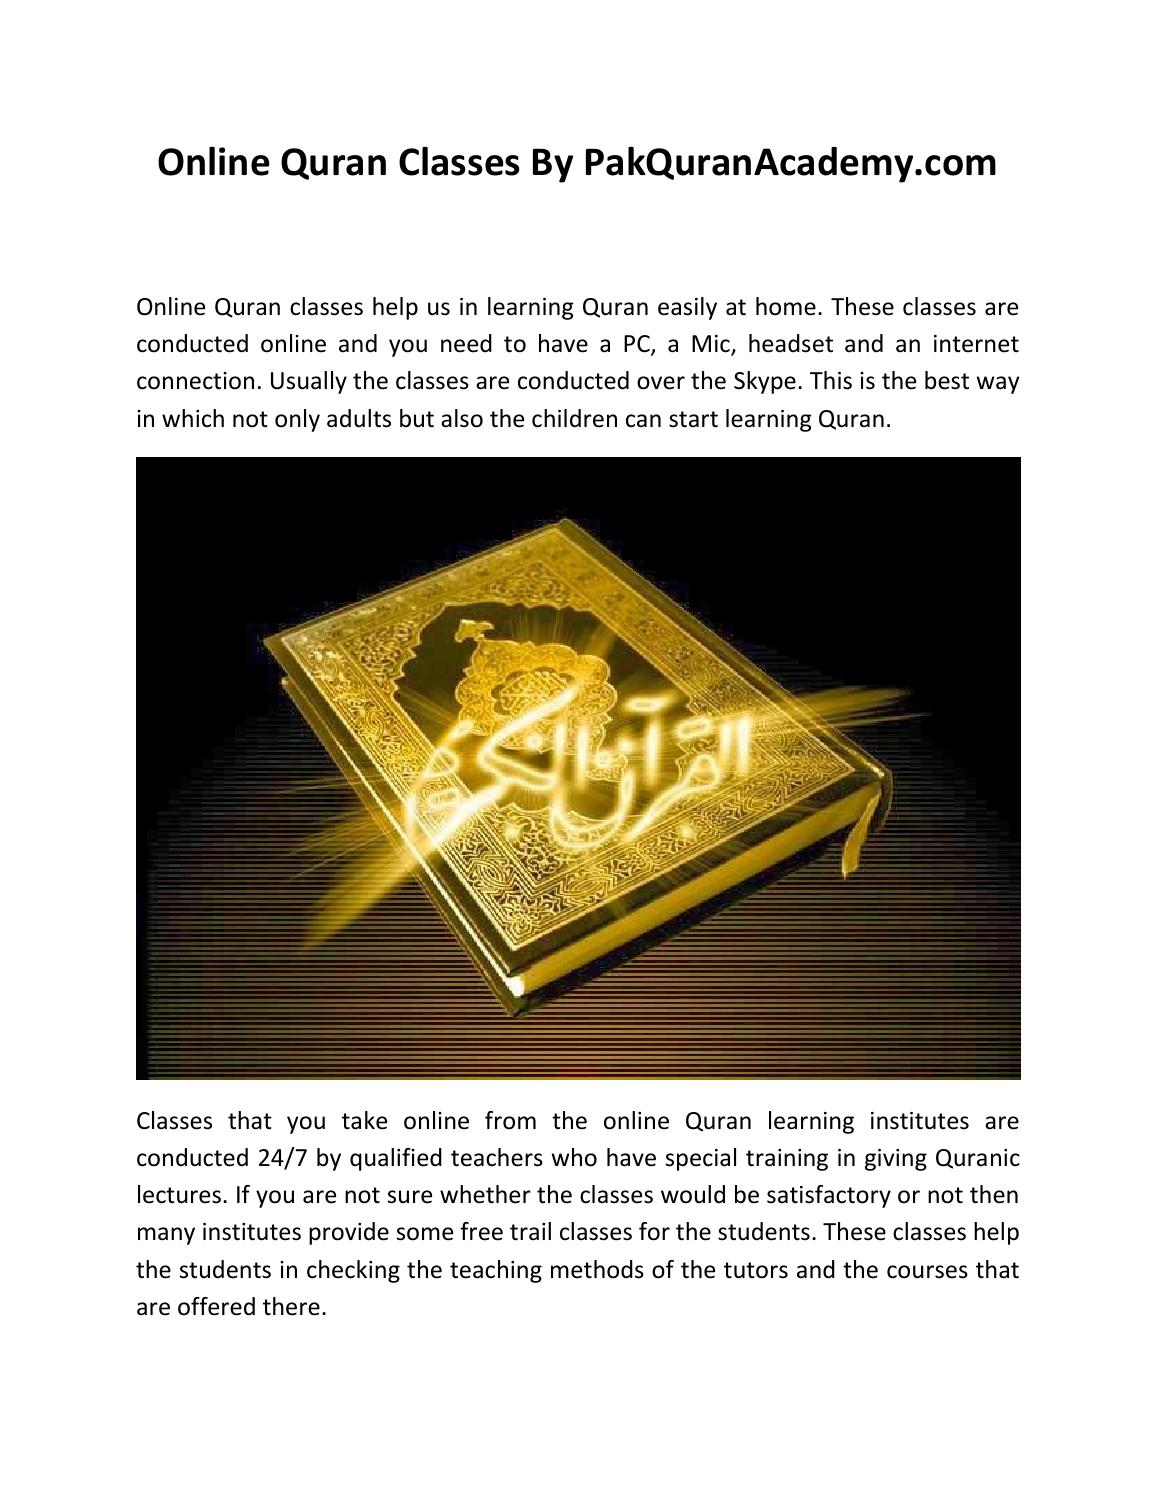 Online Quran Classes by Pak Quran Academy by Pak Quran